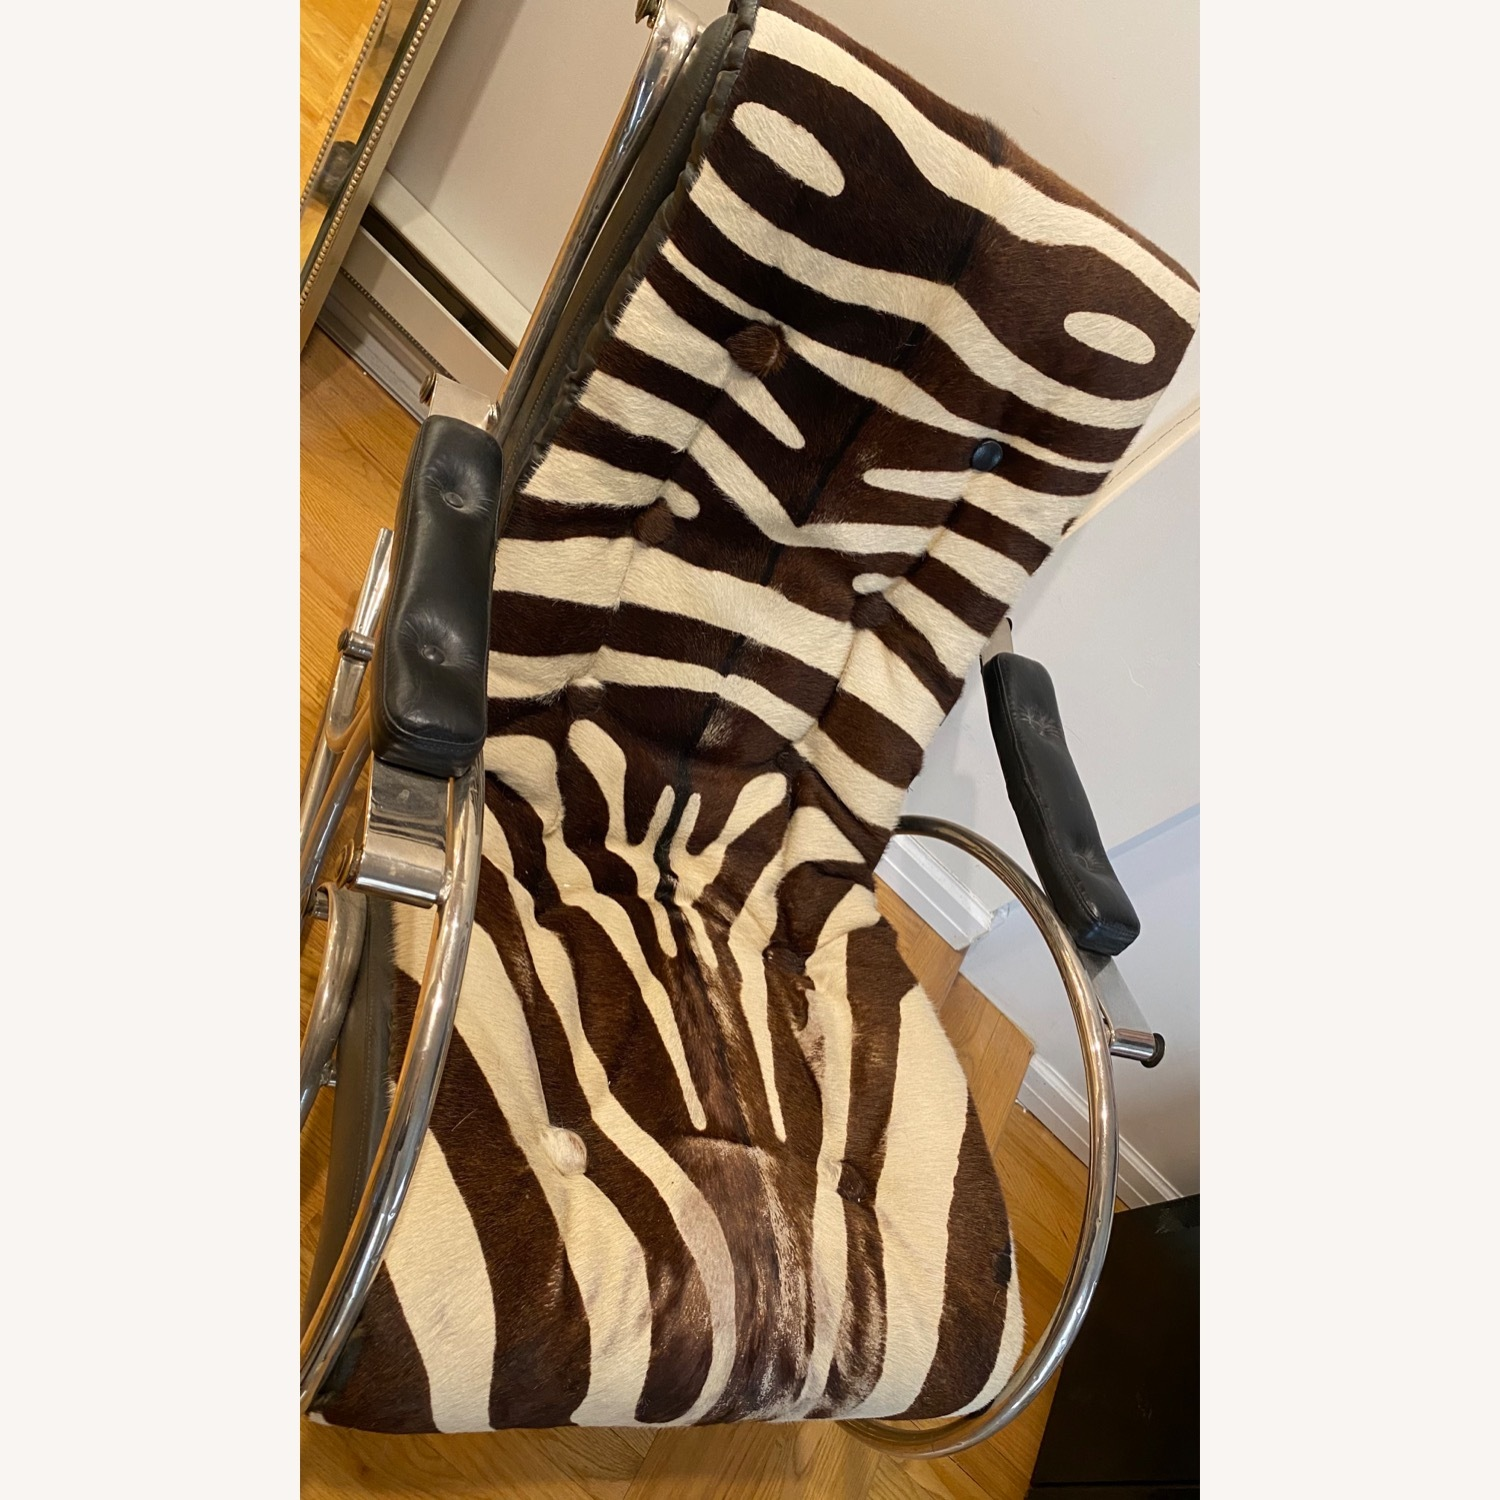 Vintage Zebra Rocking Chair - image-3